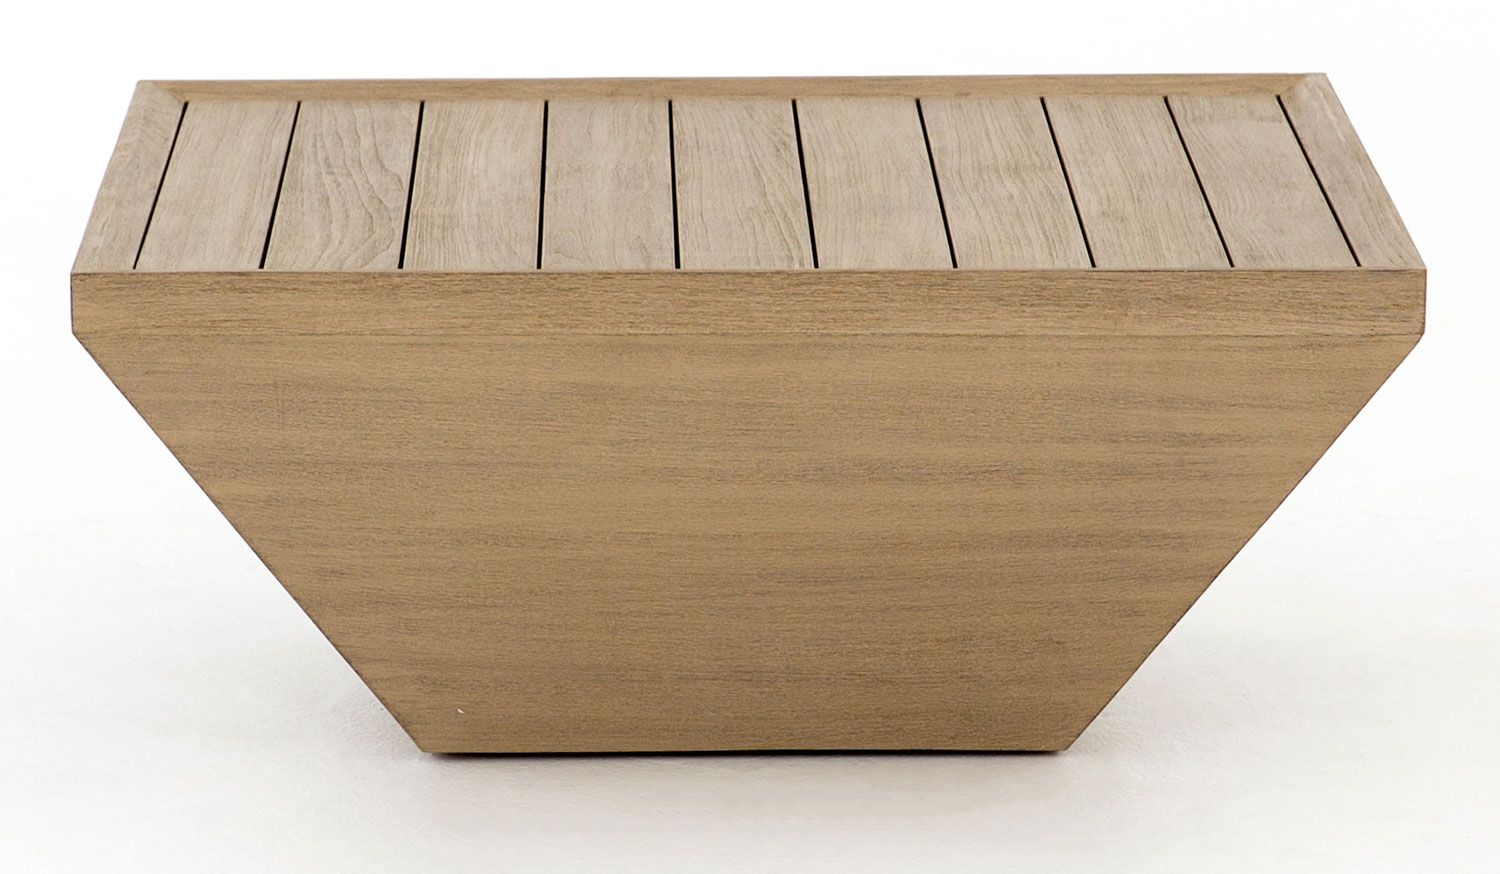 Four Hands Solano Delwin Brown Square Outdoor Coffee Table Jsol 010